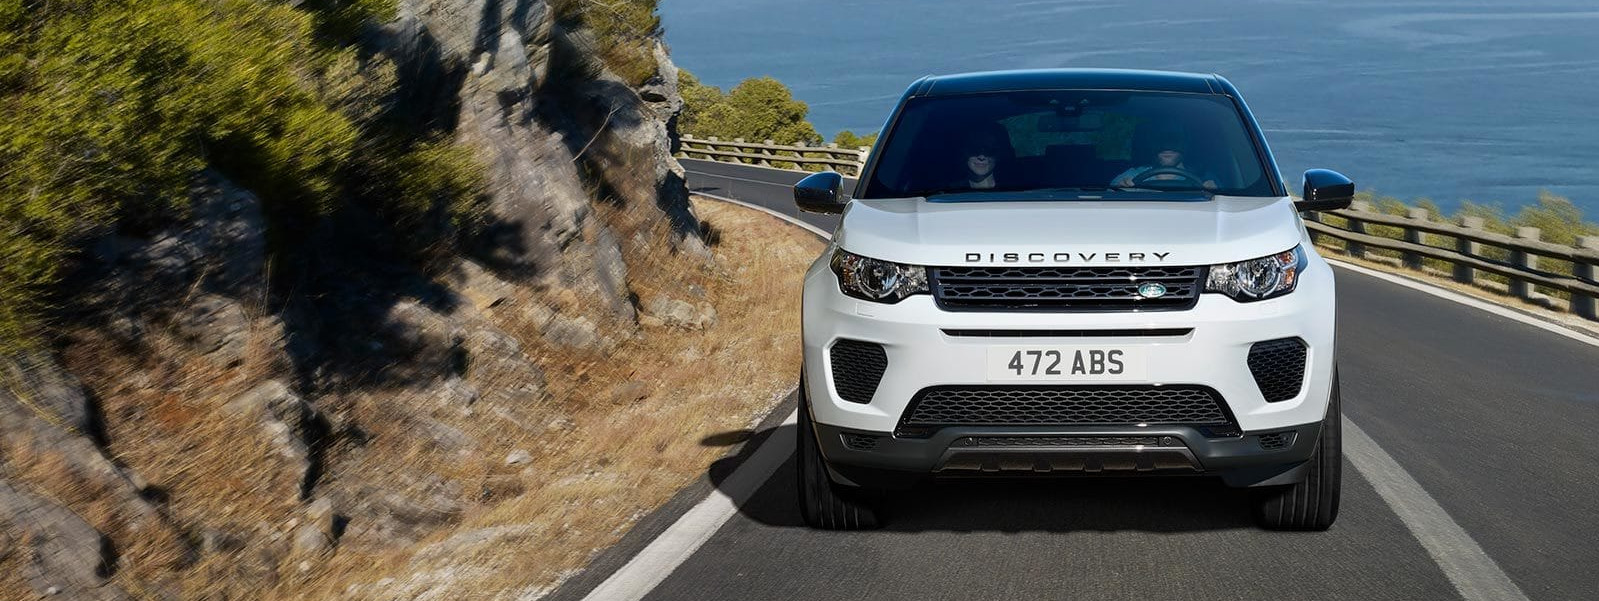 Lateral Discovery Sport